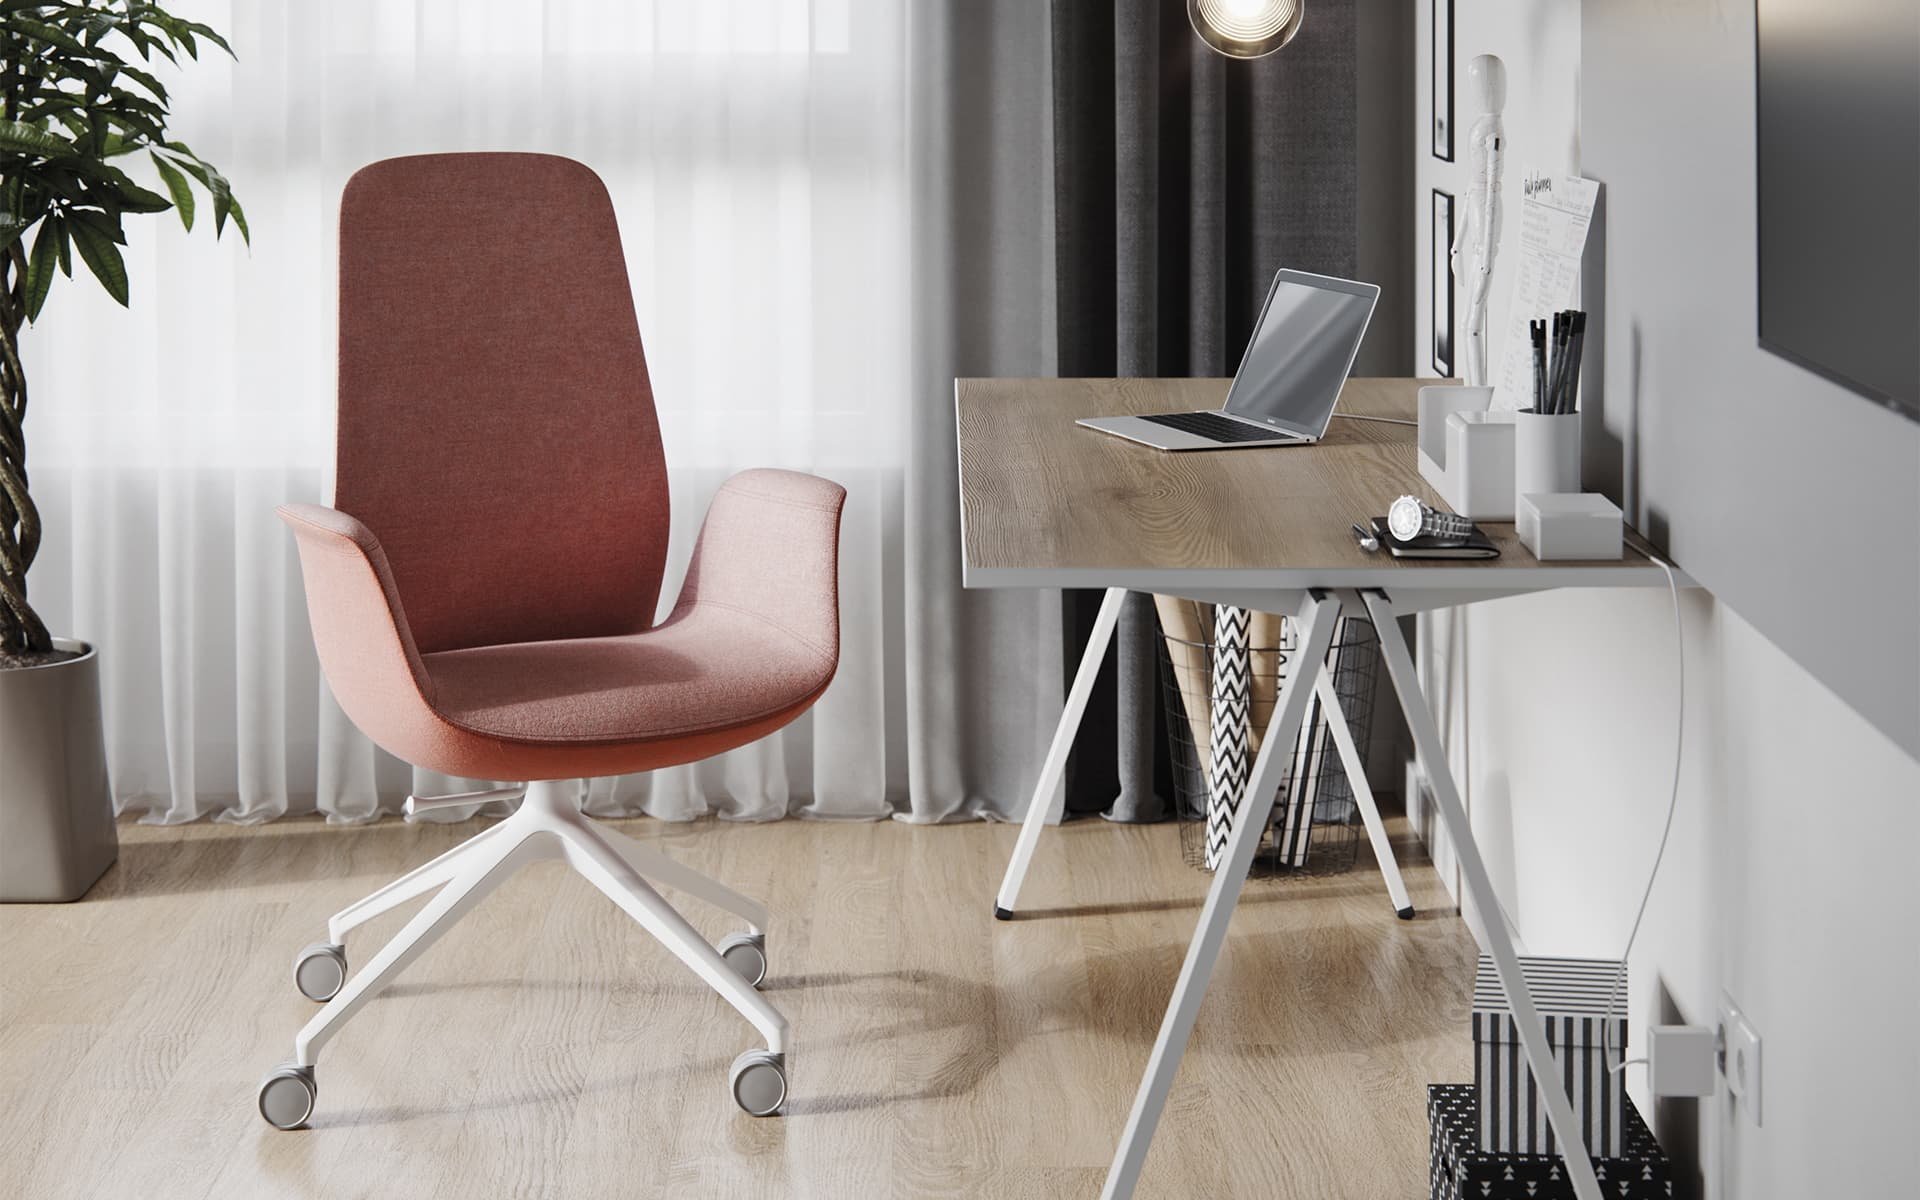 Salmon Profim Ellie office chair by ITO Design in Scandi chic home office